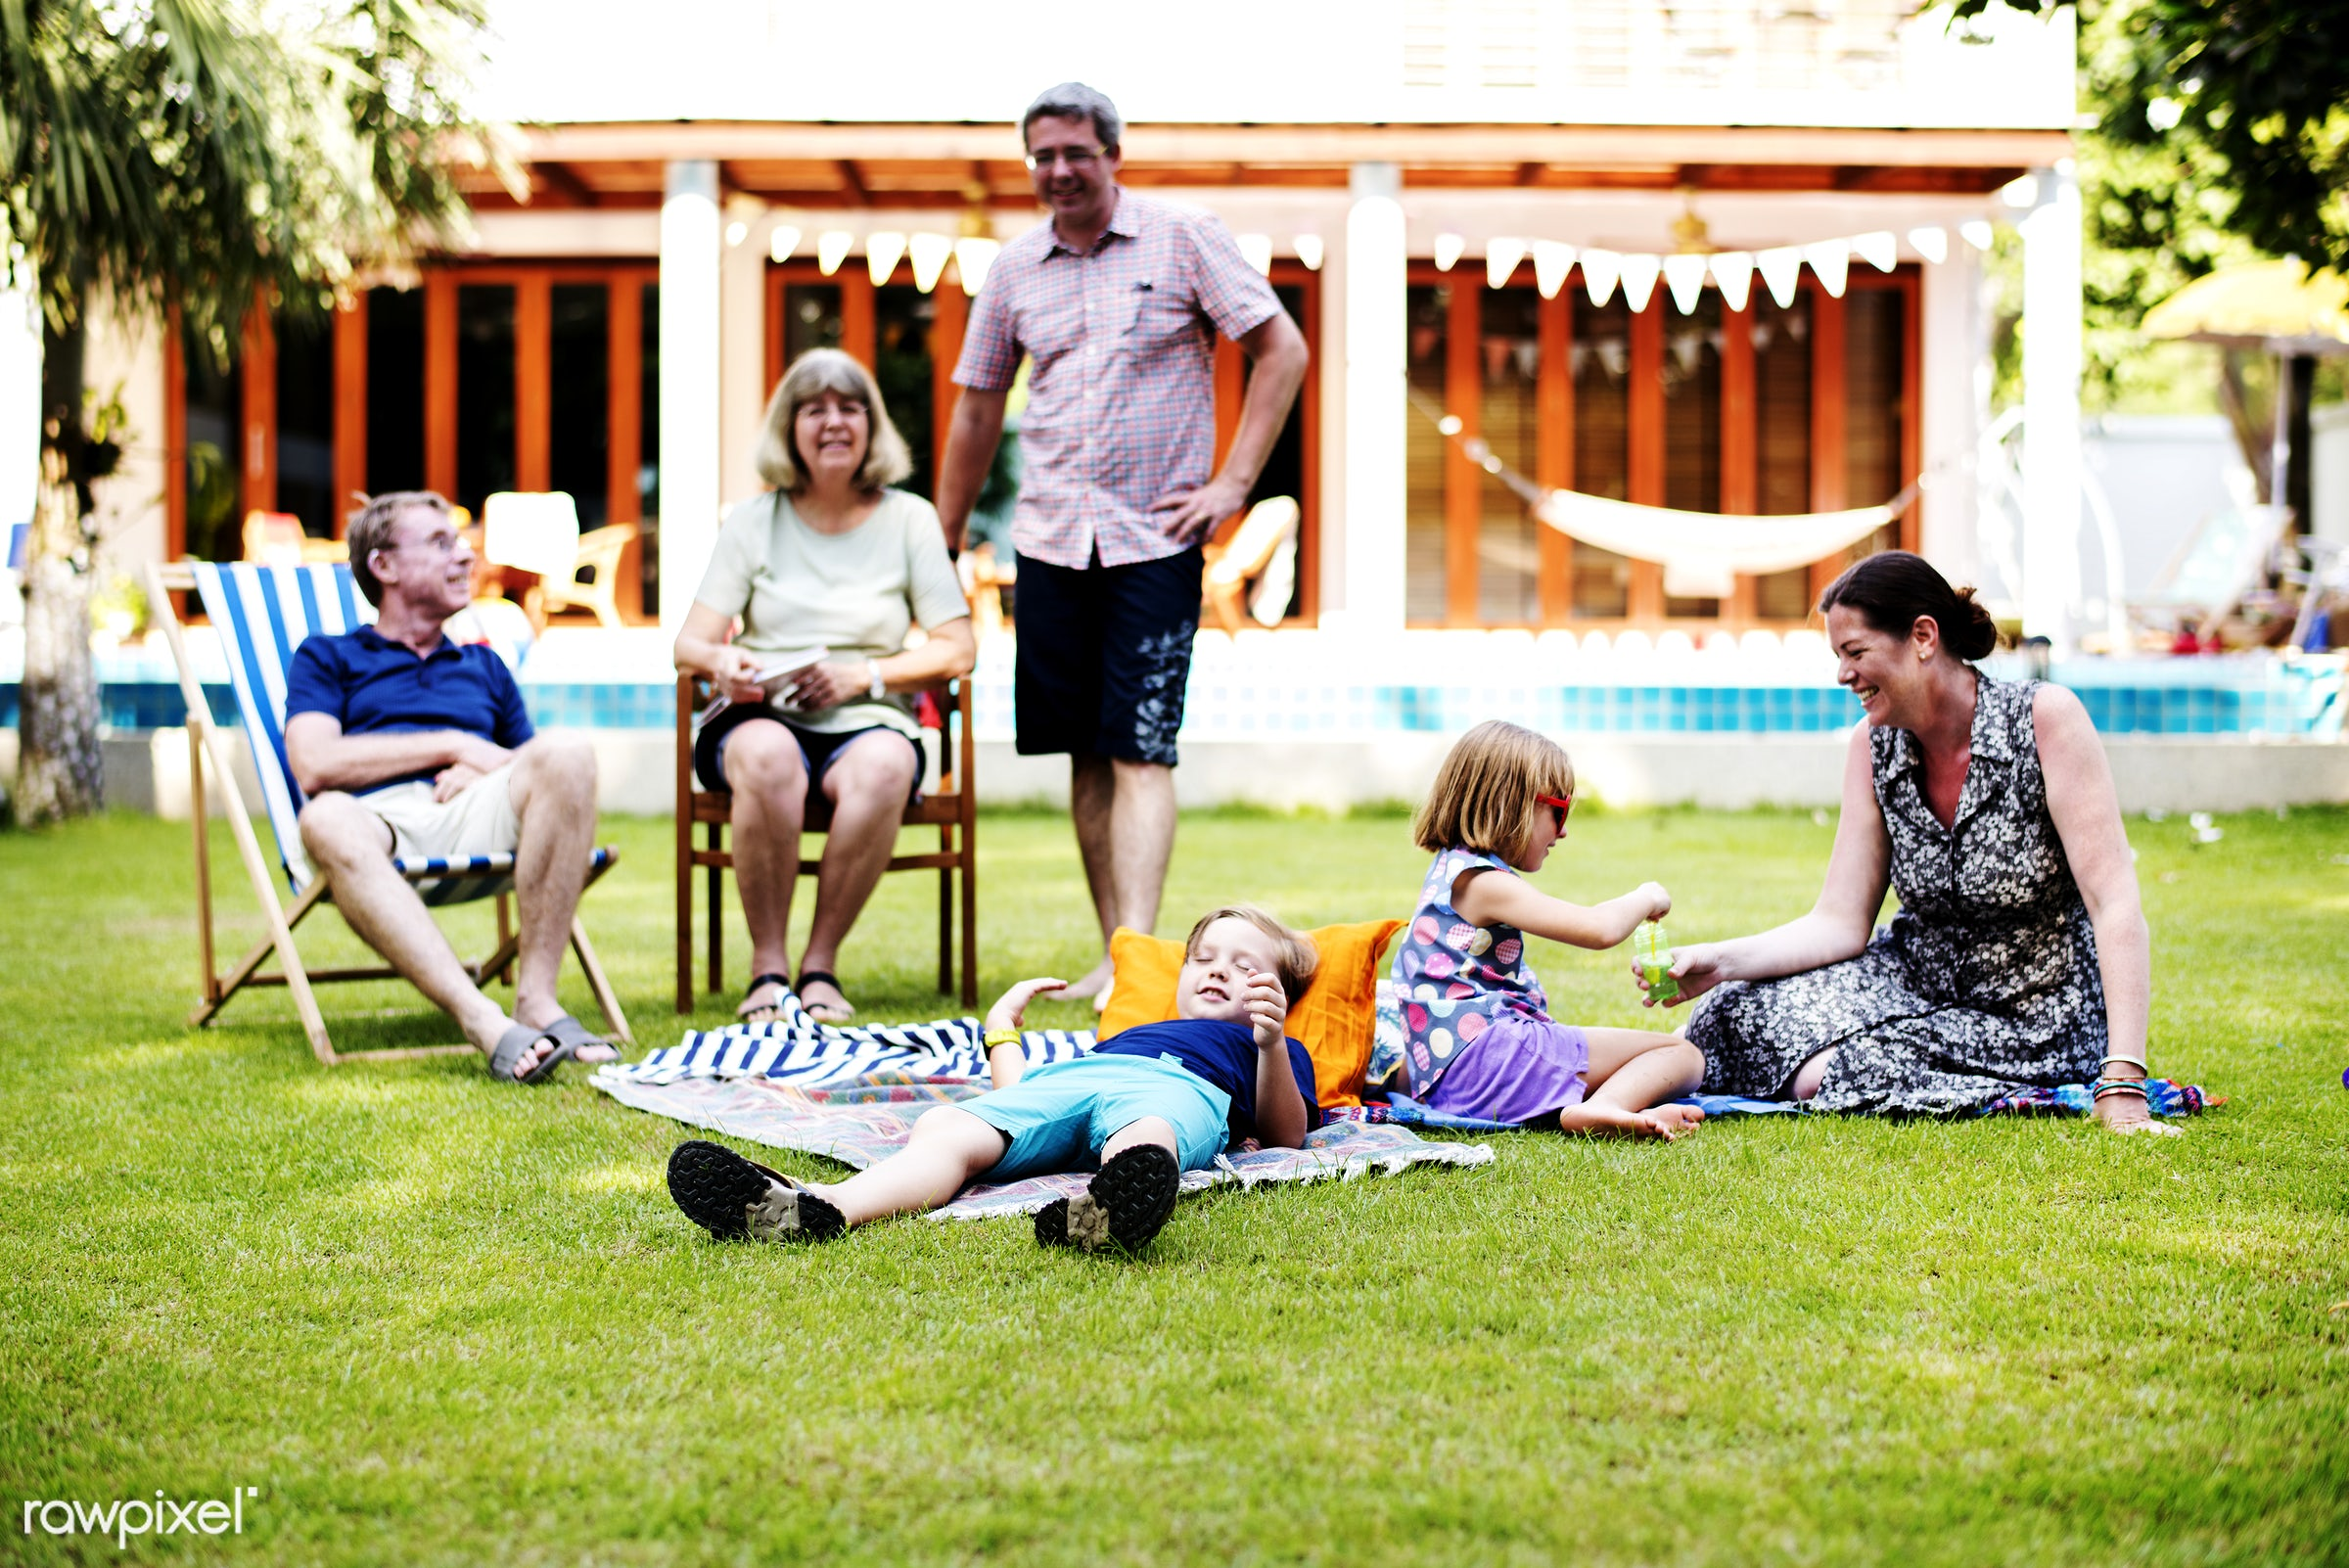 relax, daughter, together, caucasian, father, sister, family, backyard, cheerful, smiling, dad, enjoying, parent, son,...